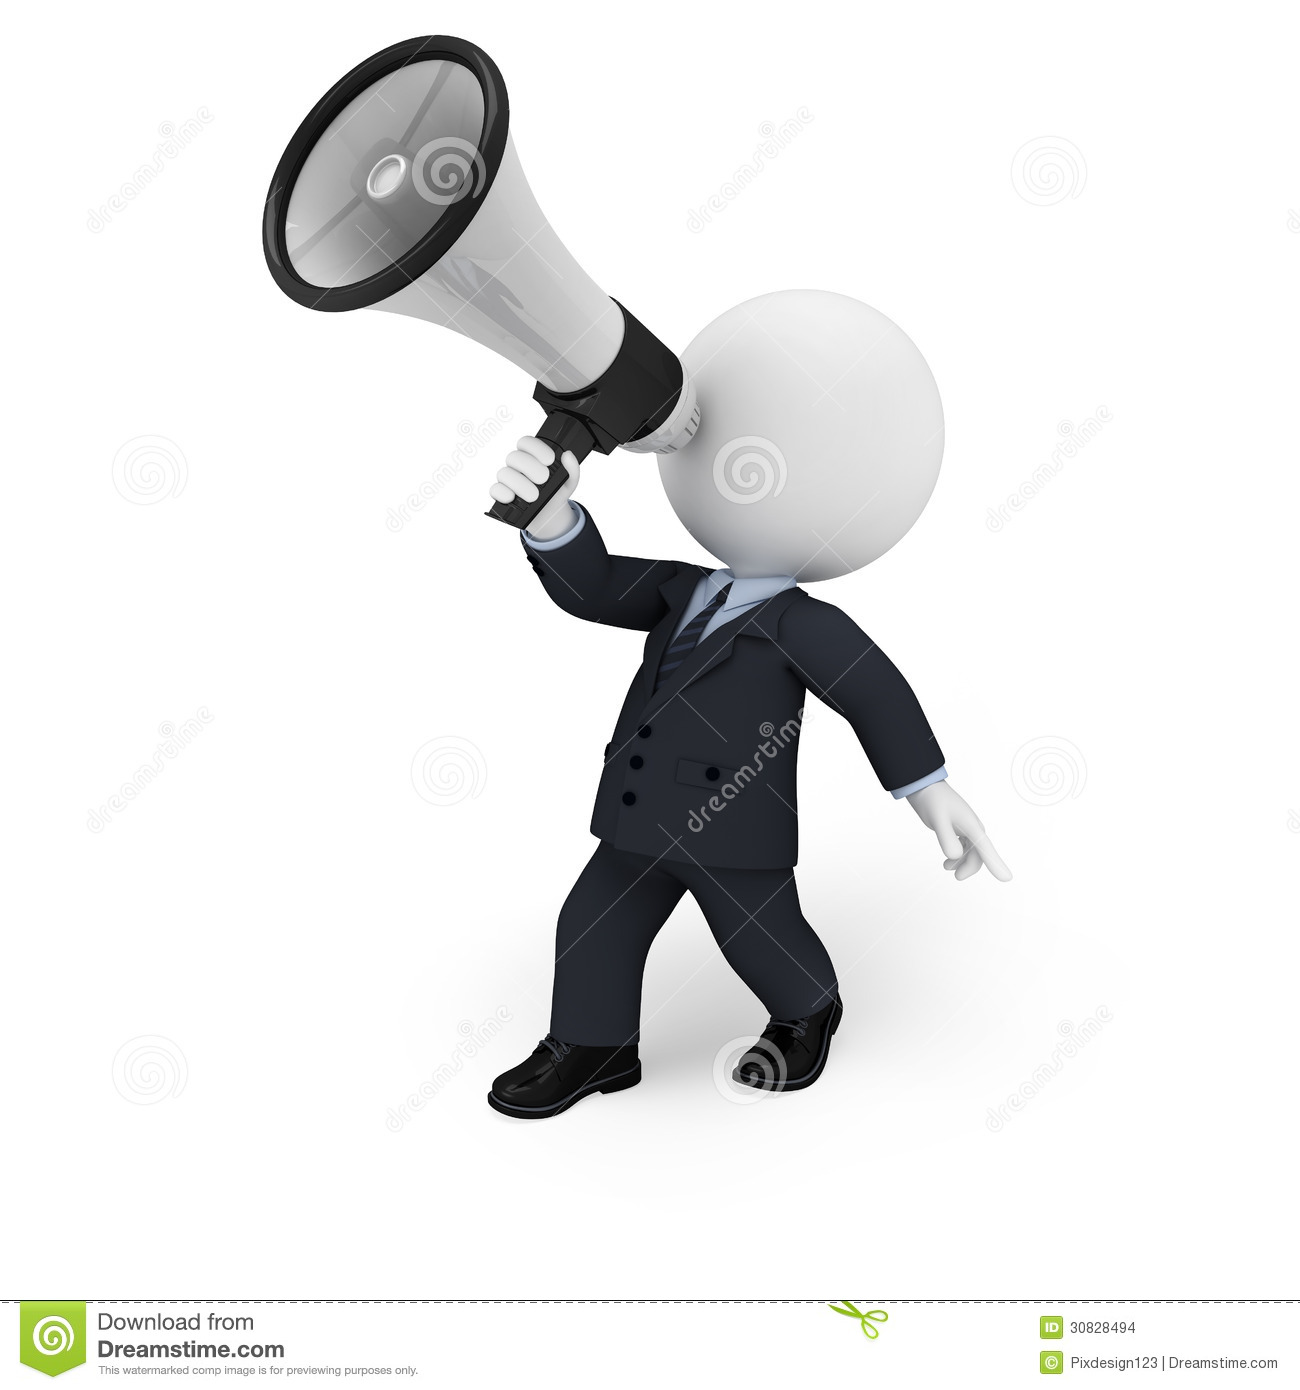 Stock Images: White people as business man with loudspeaker. Image ...